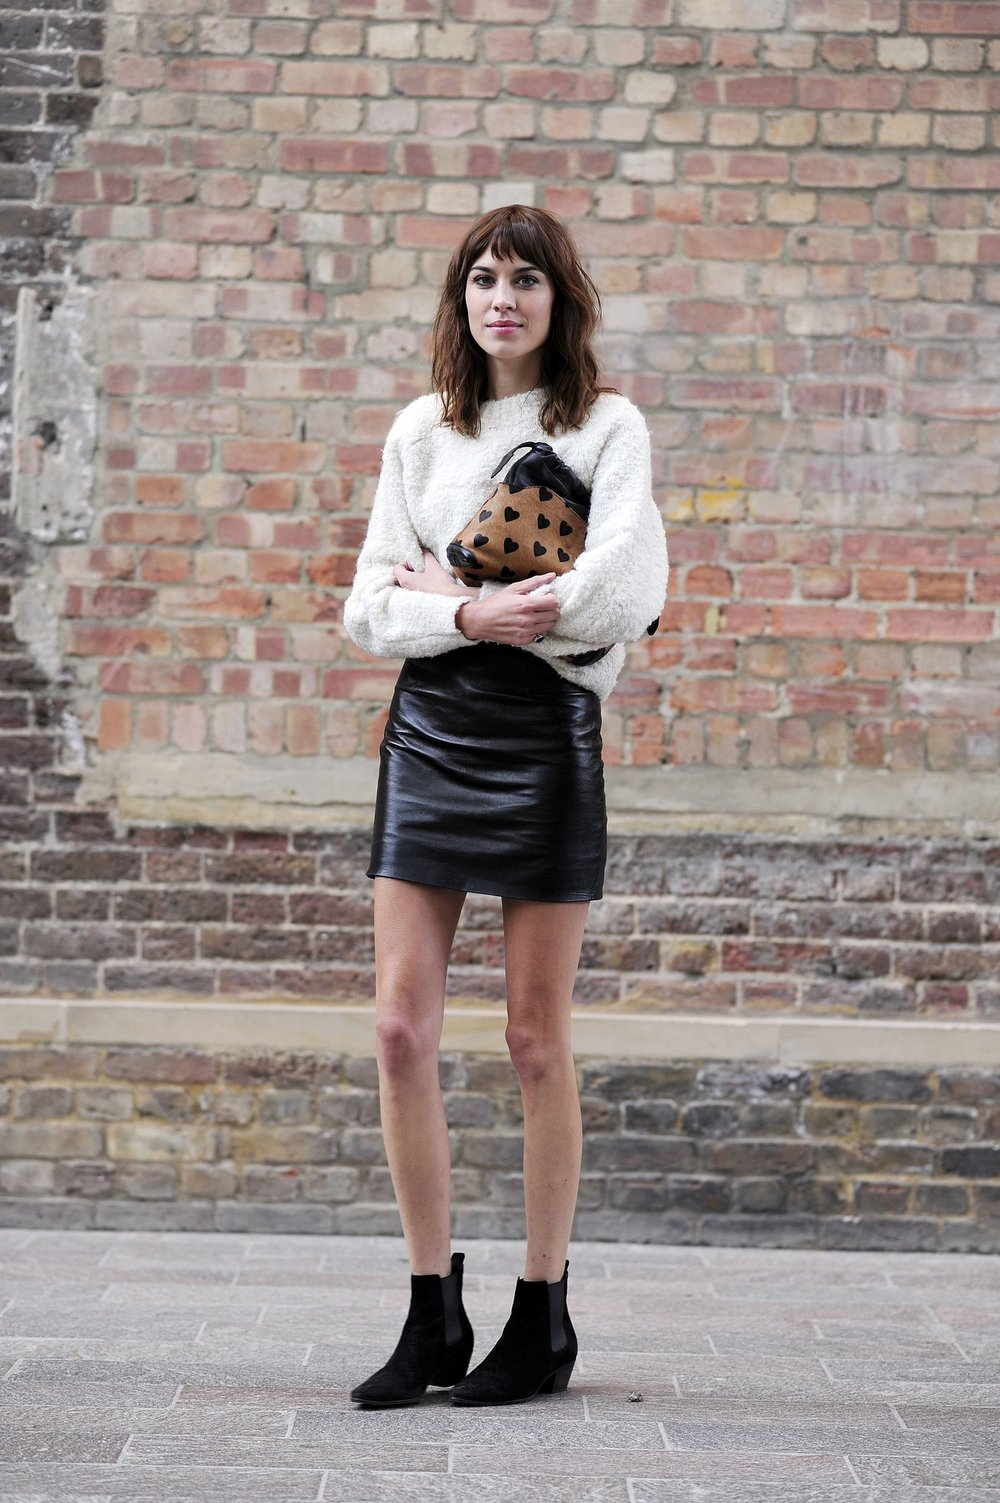 Alexa-Chung-Topshop-Burberry-London-Fashion-Week-Spring-14.jpg